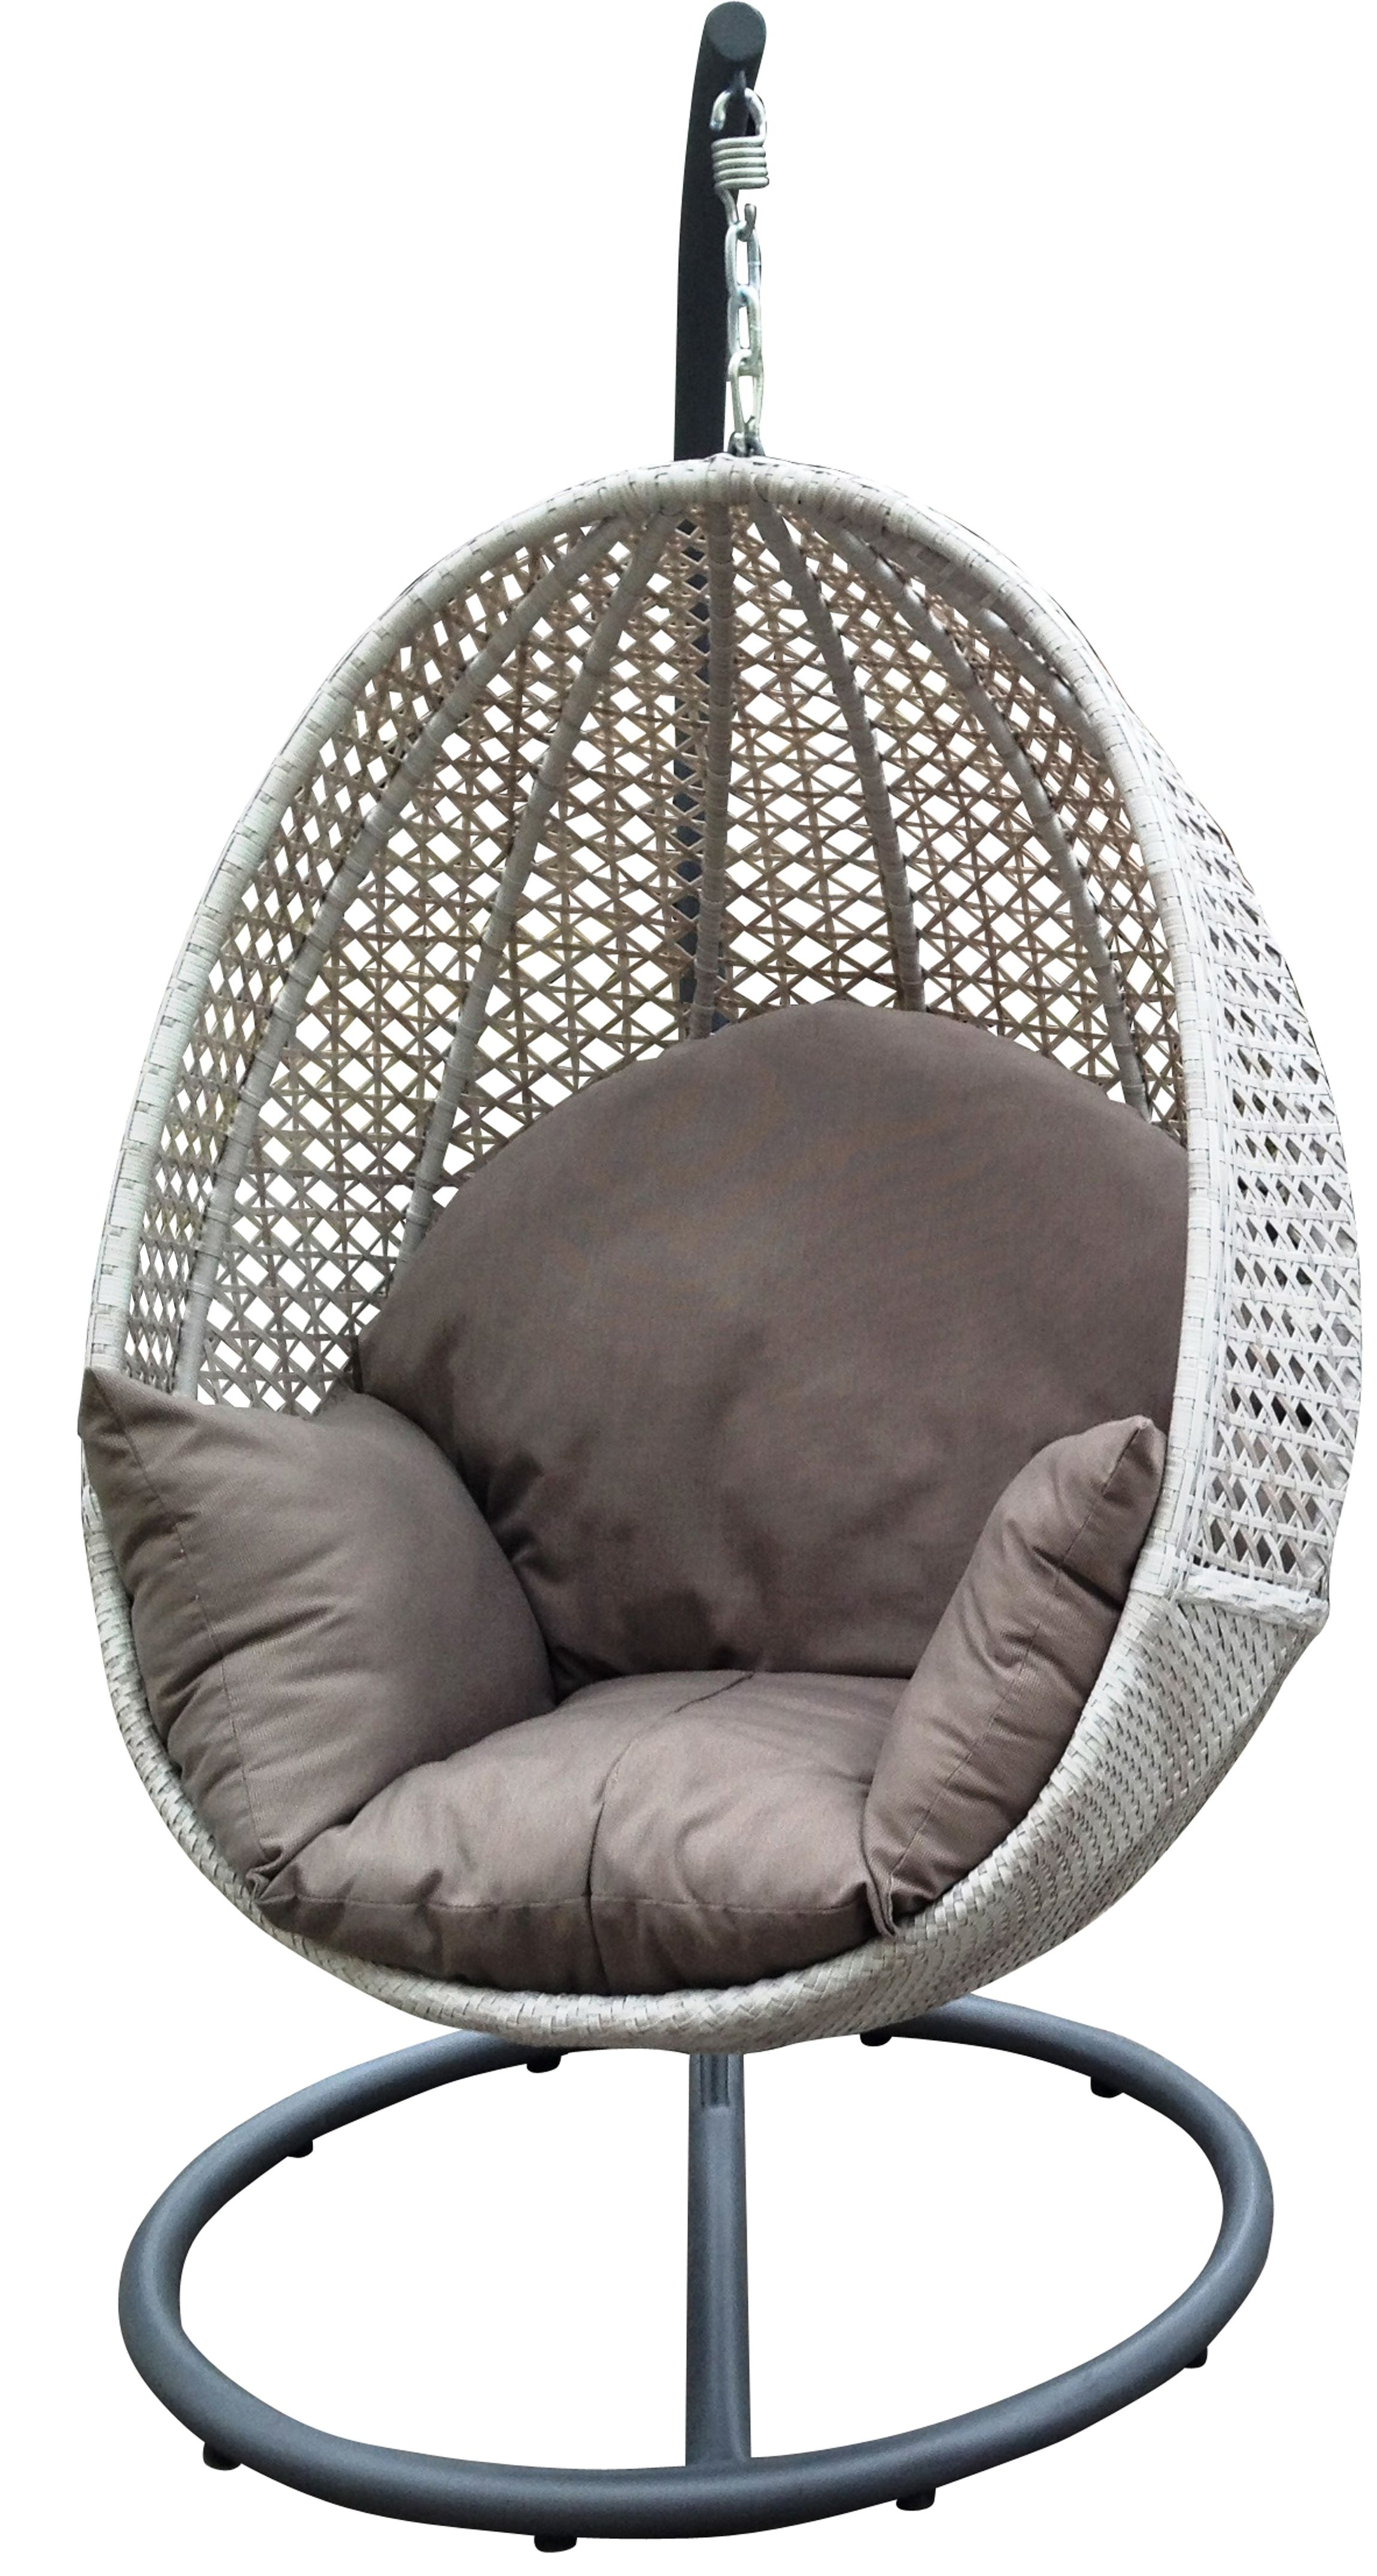 Outdoor hanging egg chair. Available at Drovers Inside